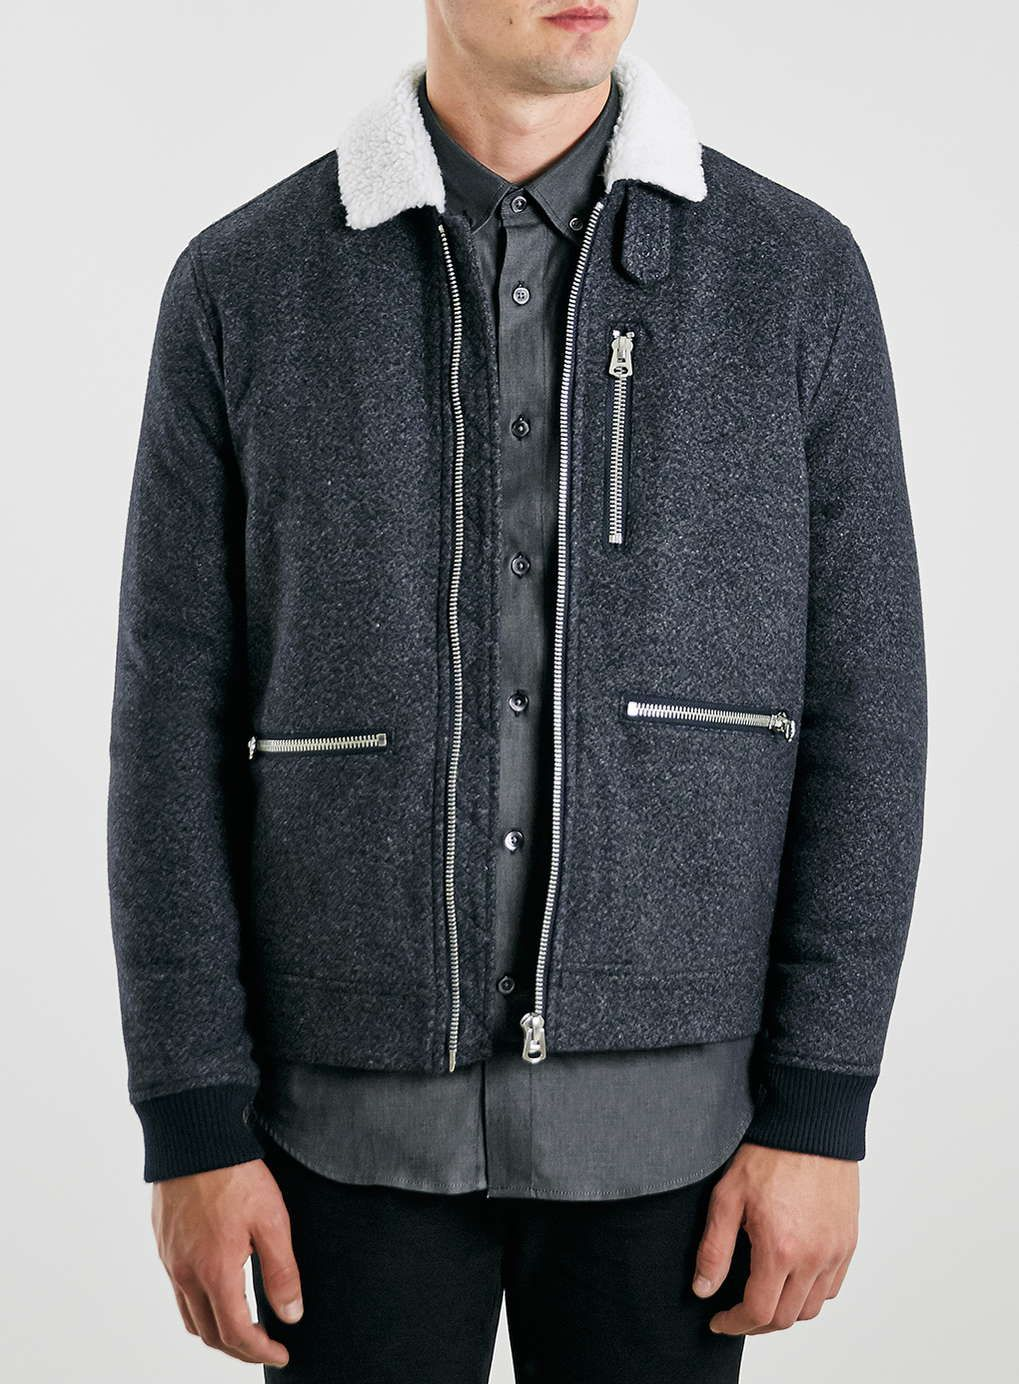 Blue Wool Blend Flight Jacket with Borg Collar | Products, Wool ...